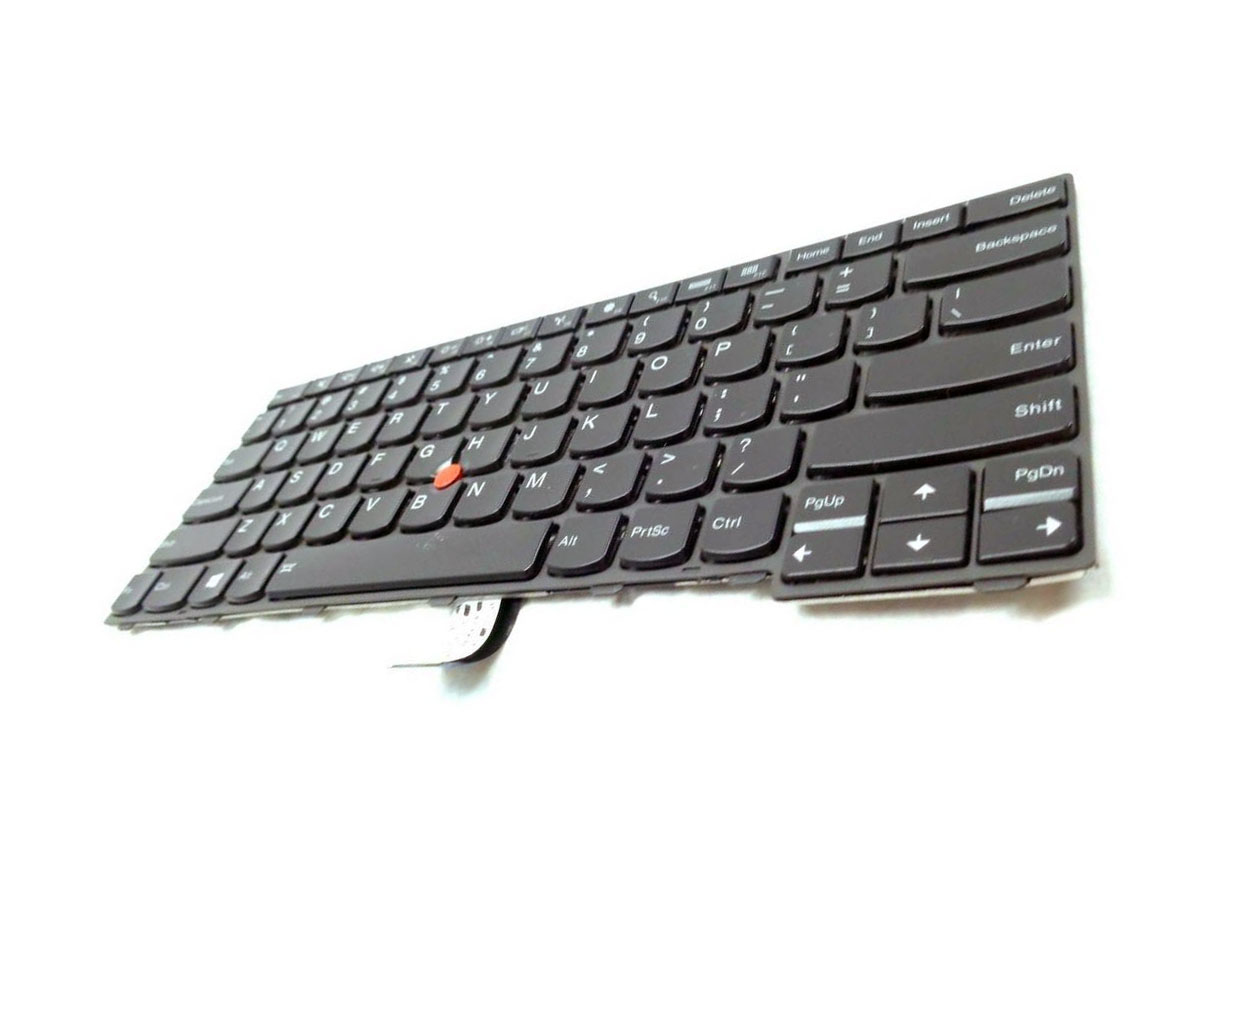 LENOVO 04X0168 KEYBOARD NOTEBOOK SPARE PART